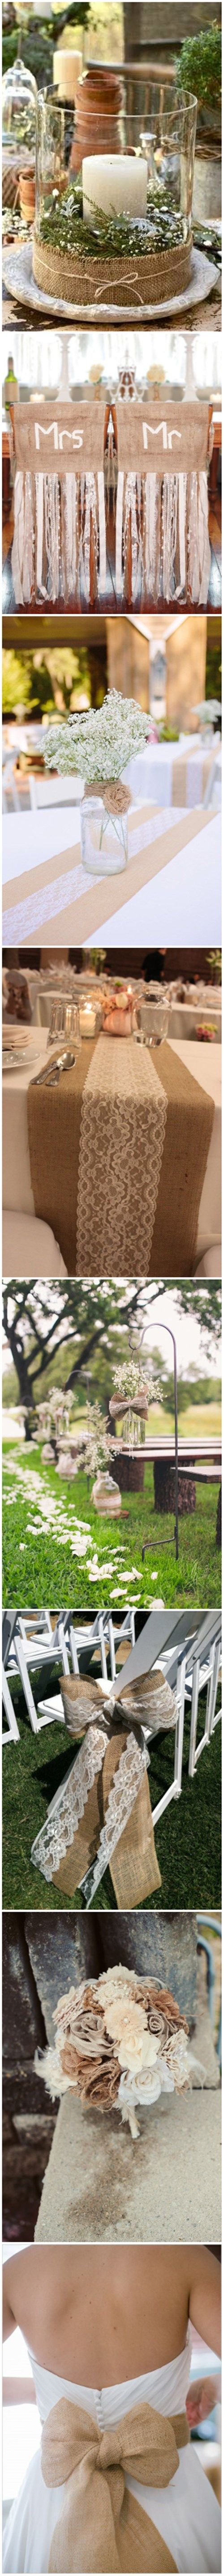 Top 50 burlap and lace wedding Ideas